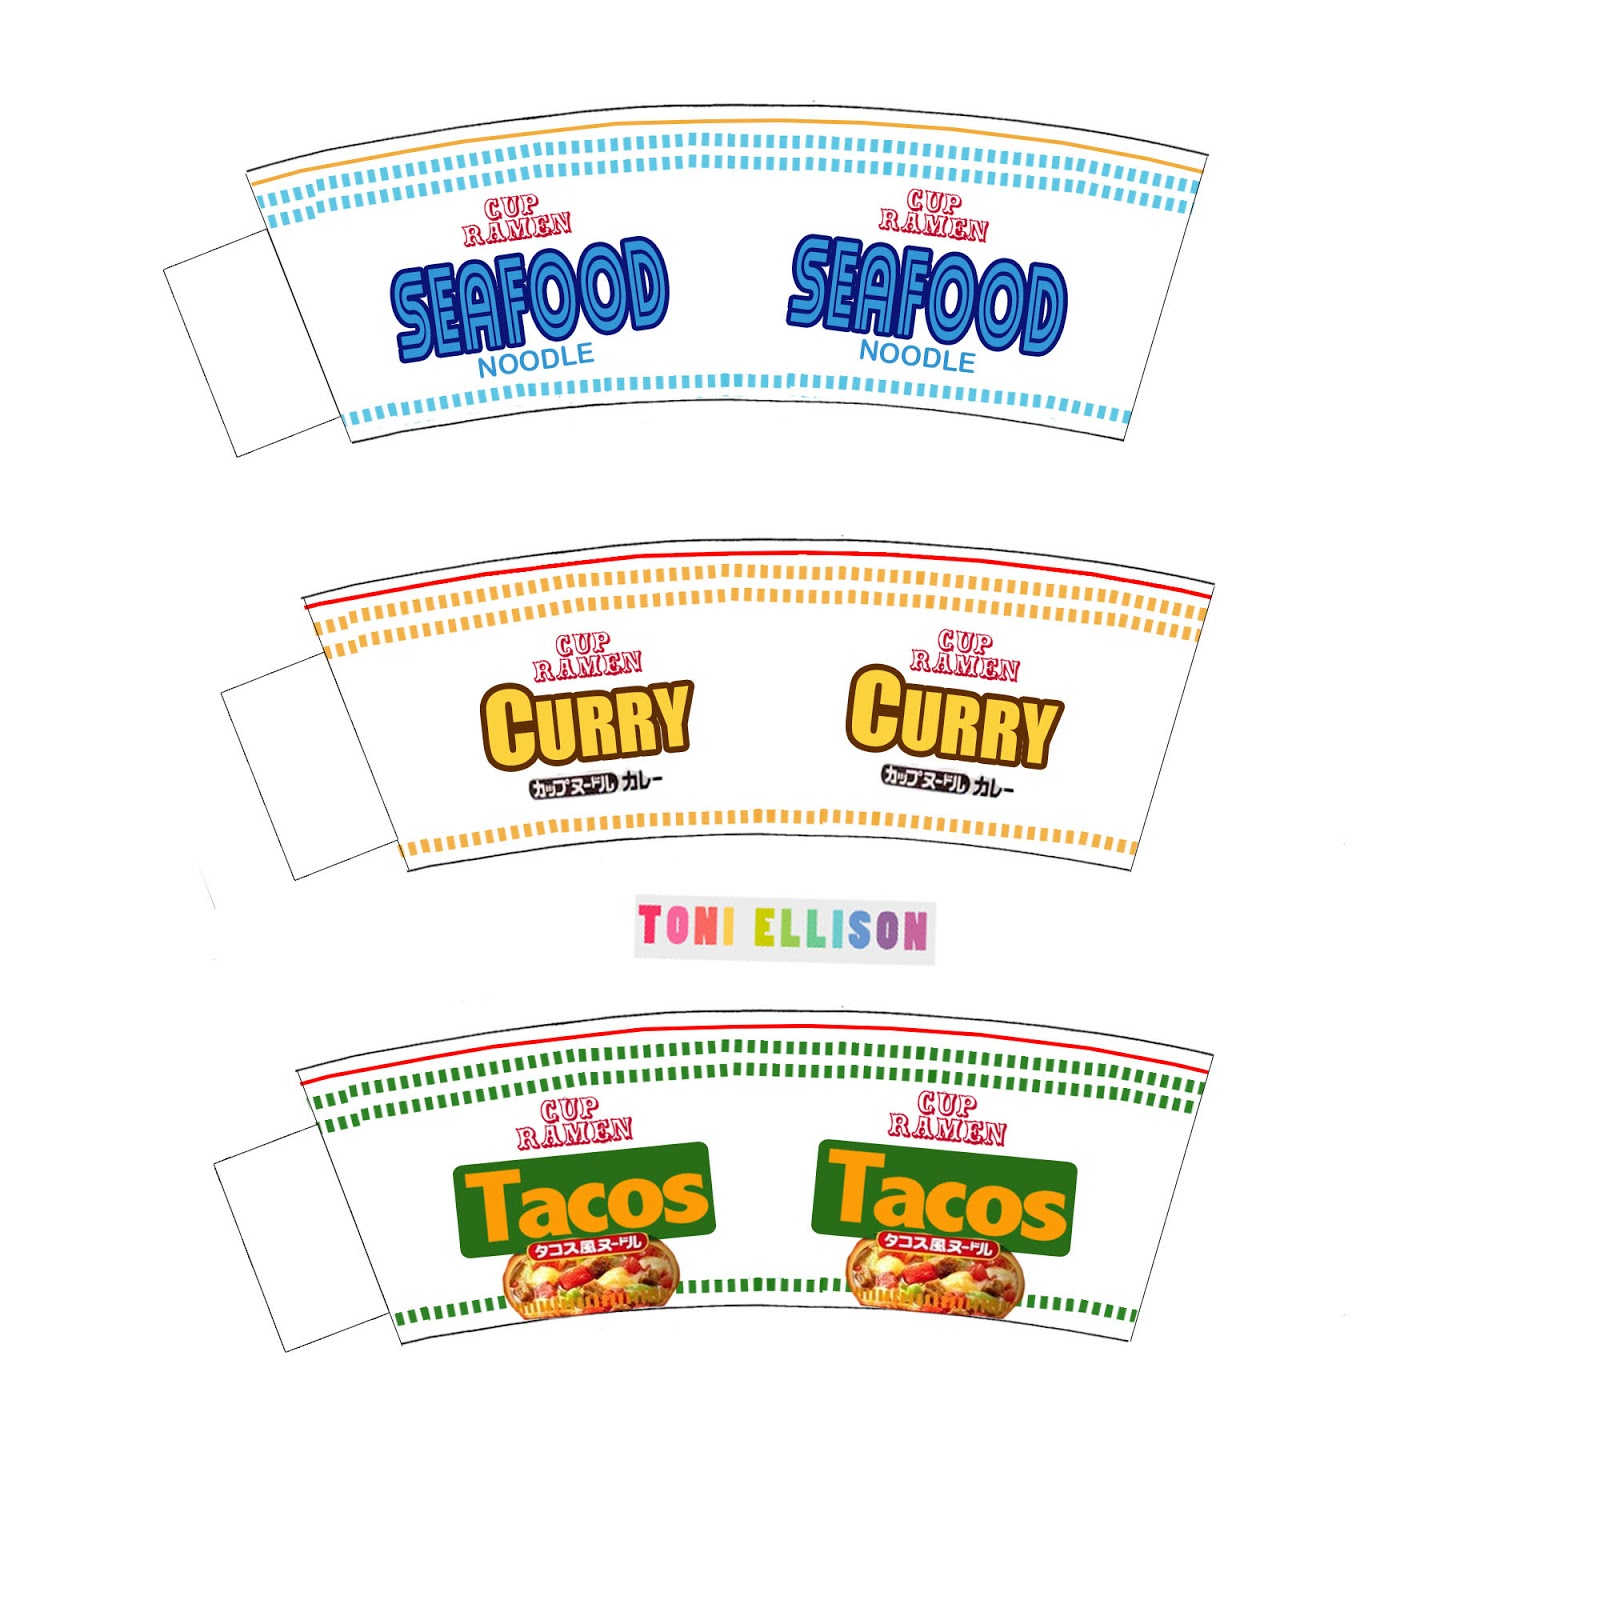 coffee cup wrapper template - toni ellison cup ramen from another country